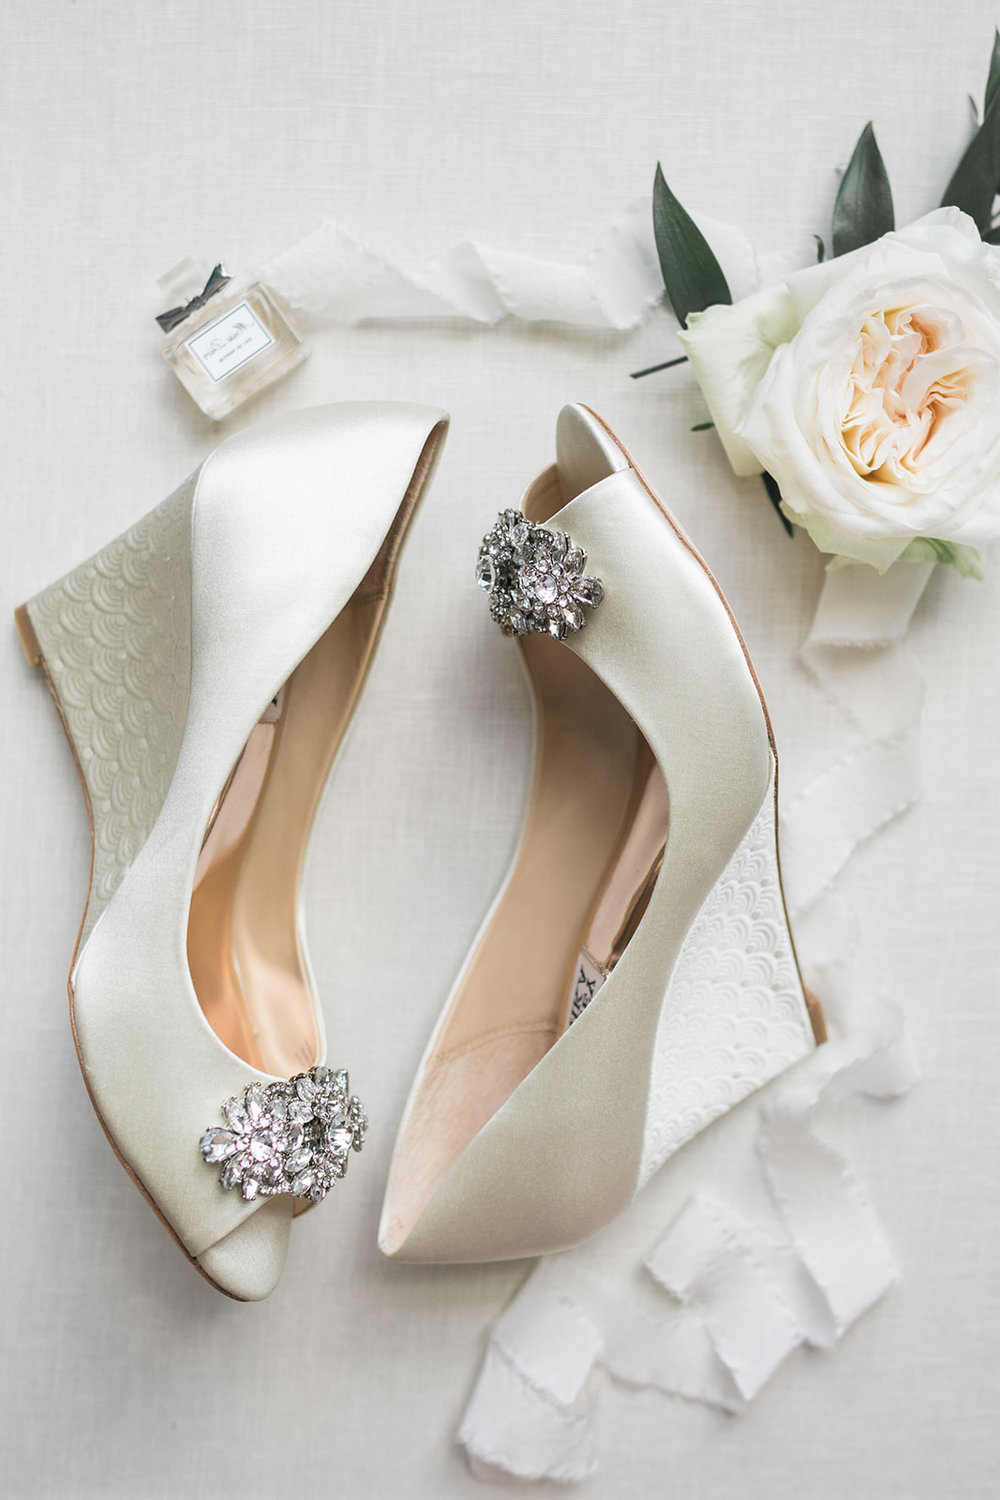 Bride's Badgley Mischka wedding shoes for Pittsburgh wedding at PNC Park planned by Exhale Events. Find more wedding inspiration at exhale-events.com!